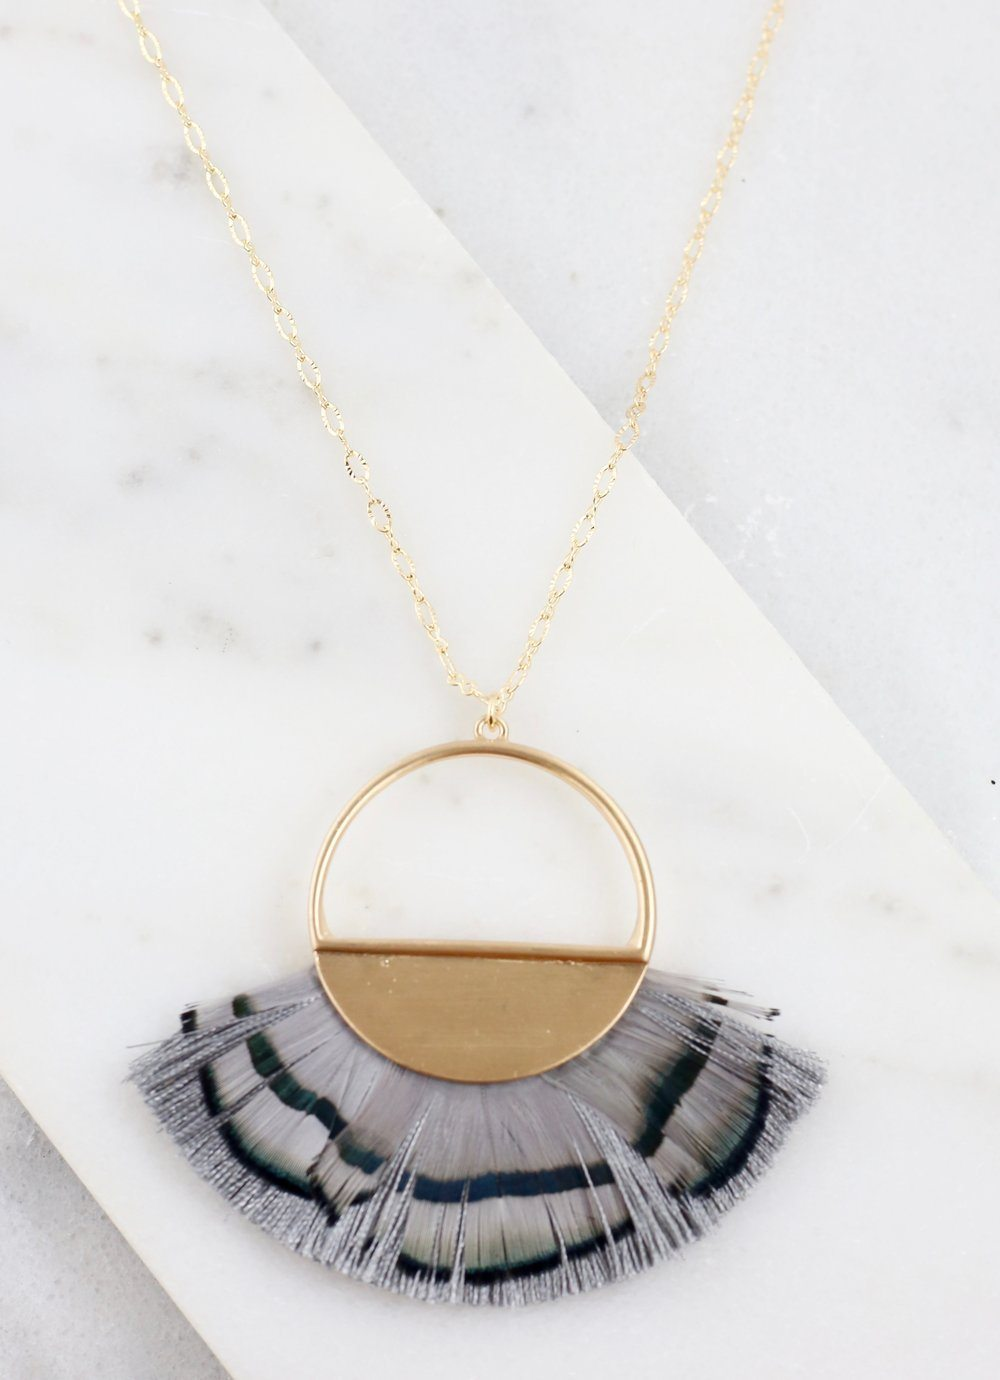 Owens Long Gray Feather Necklace - Caroline Hill